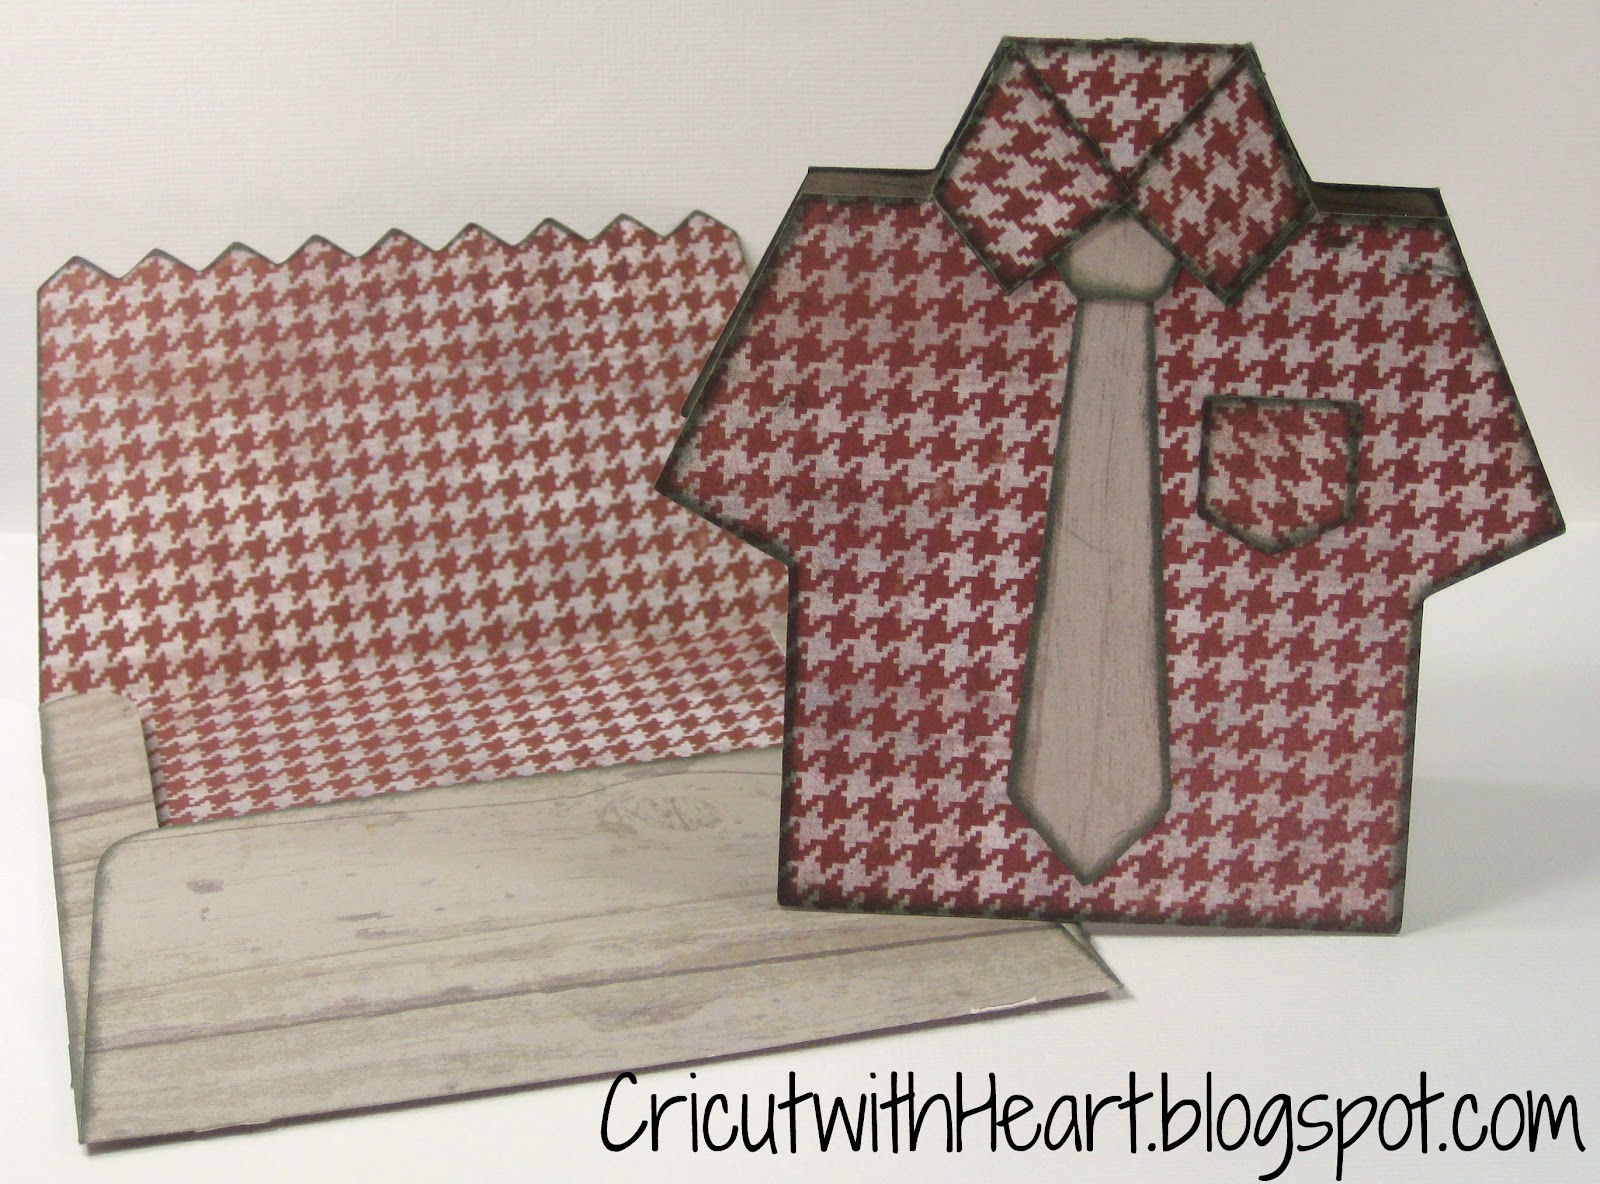 Fantabulous cricut challenge blog fantabulous friday 165 wedding -  Up Soon I Wanted To Share This Men S Shirt Card That I Made Using The Cricut Artiste Cartridge It Even Has A Matching Envelope How Easy Is That